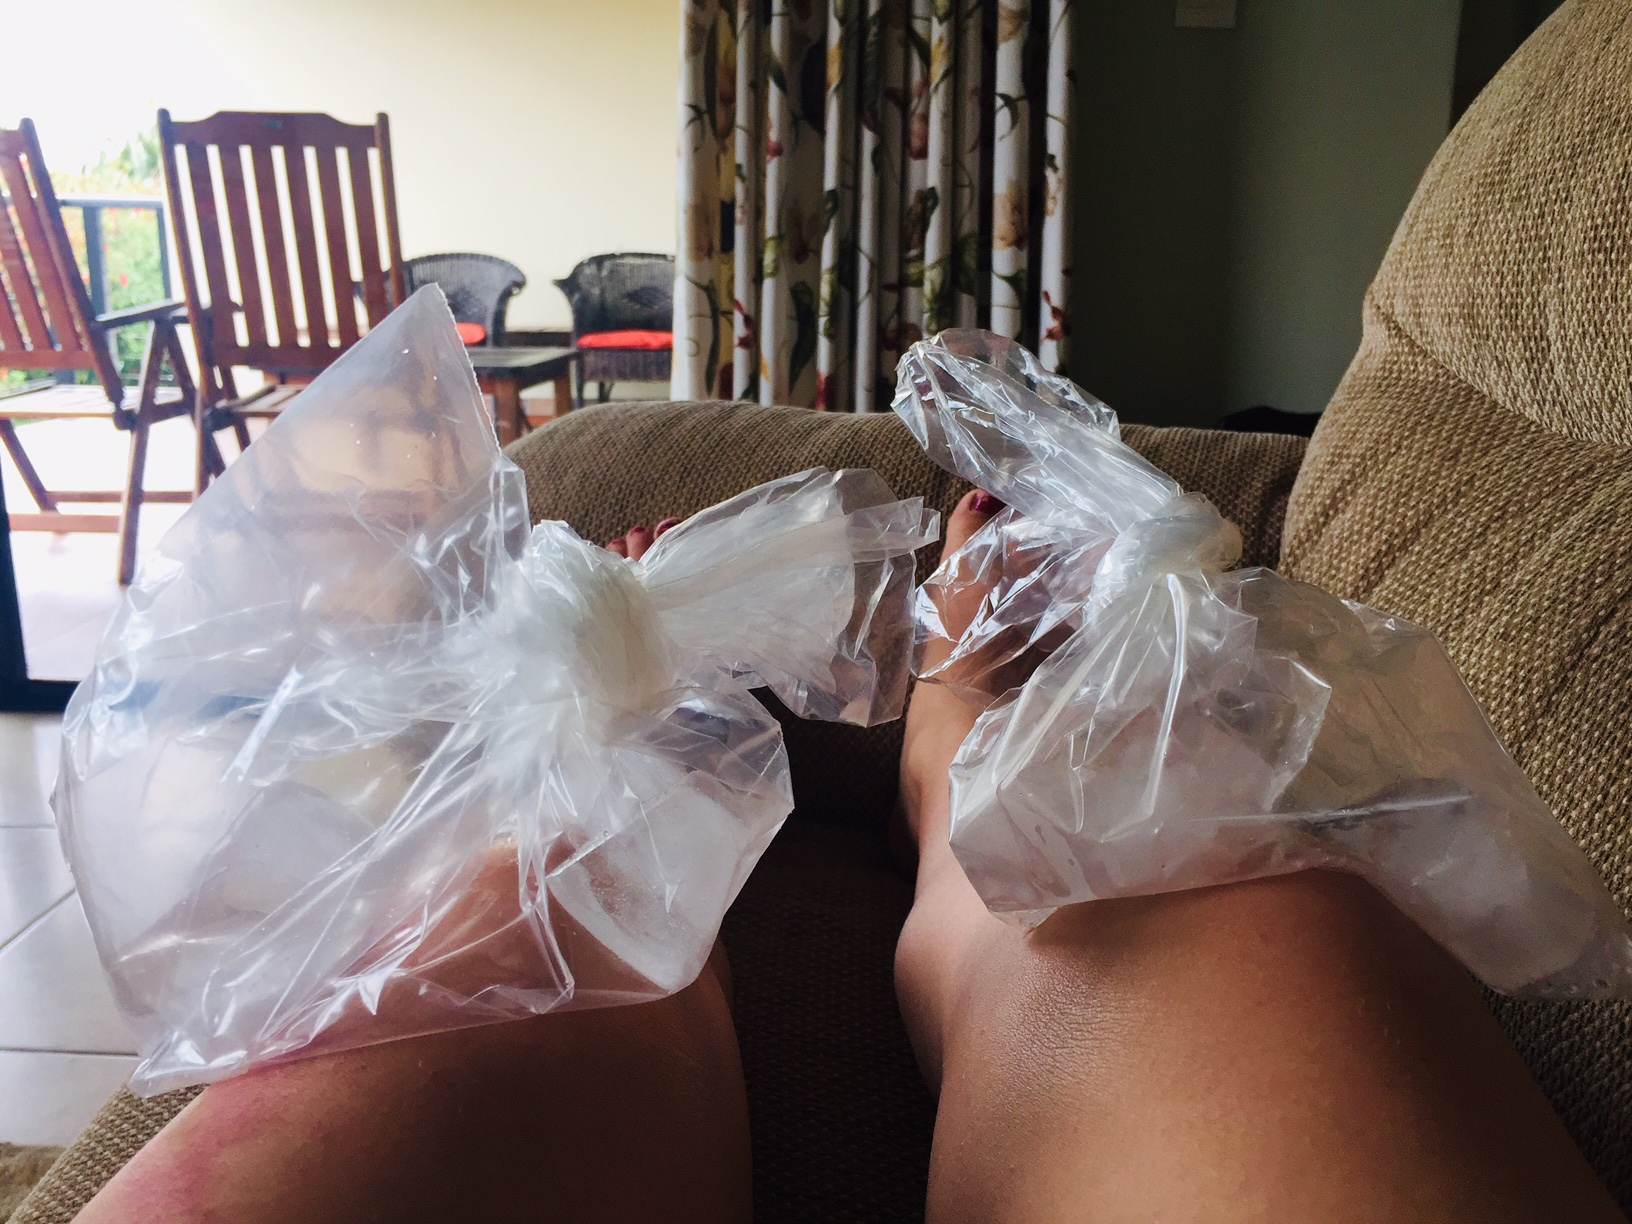 ice-knee-injury-running-mama-on-the-run-blog-sa.jpg